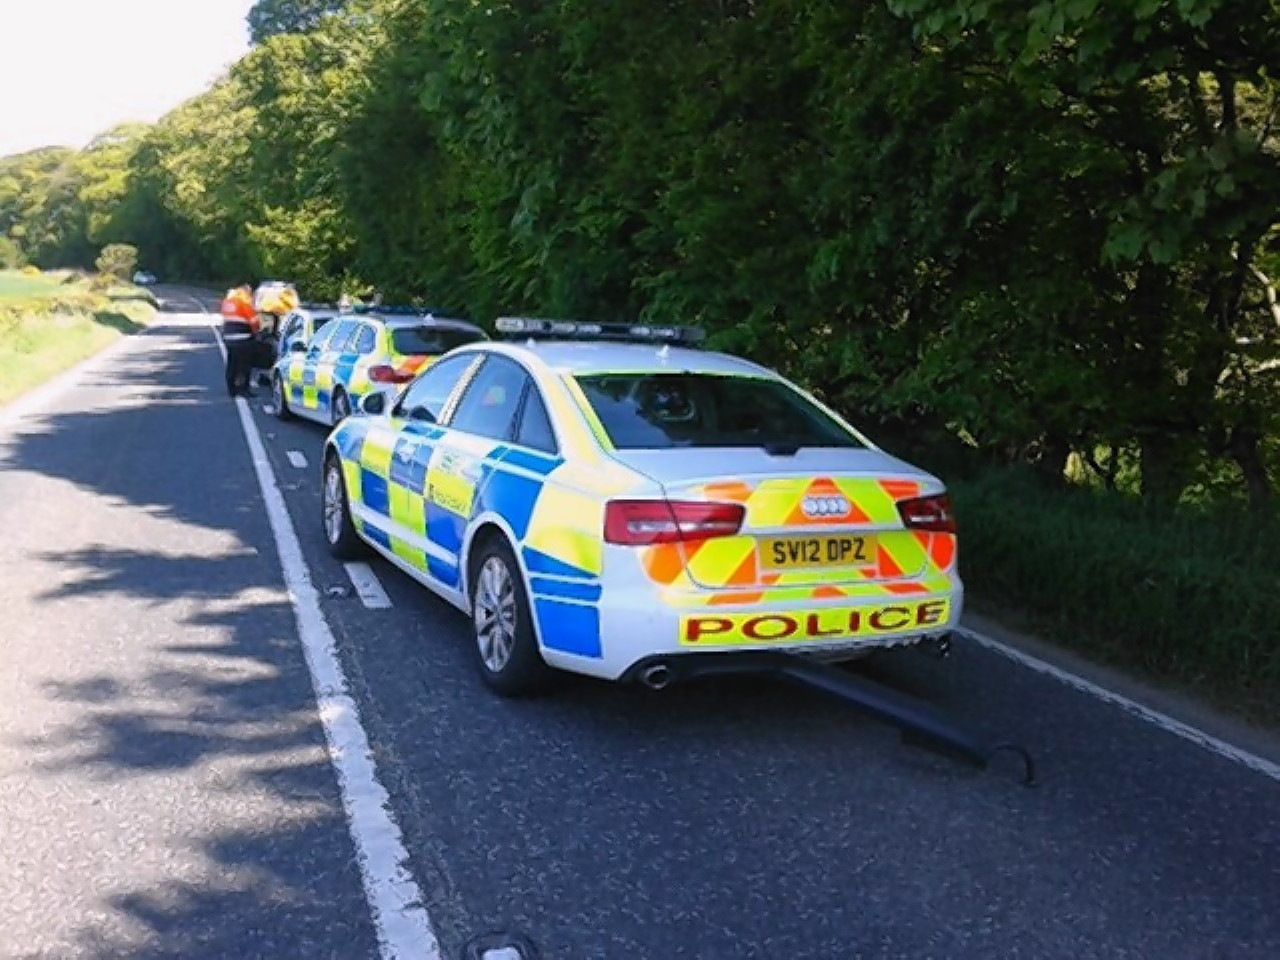 Police on the scene of a motorcycle crash on the A947 near Oldmeldrum last Friday